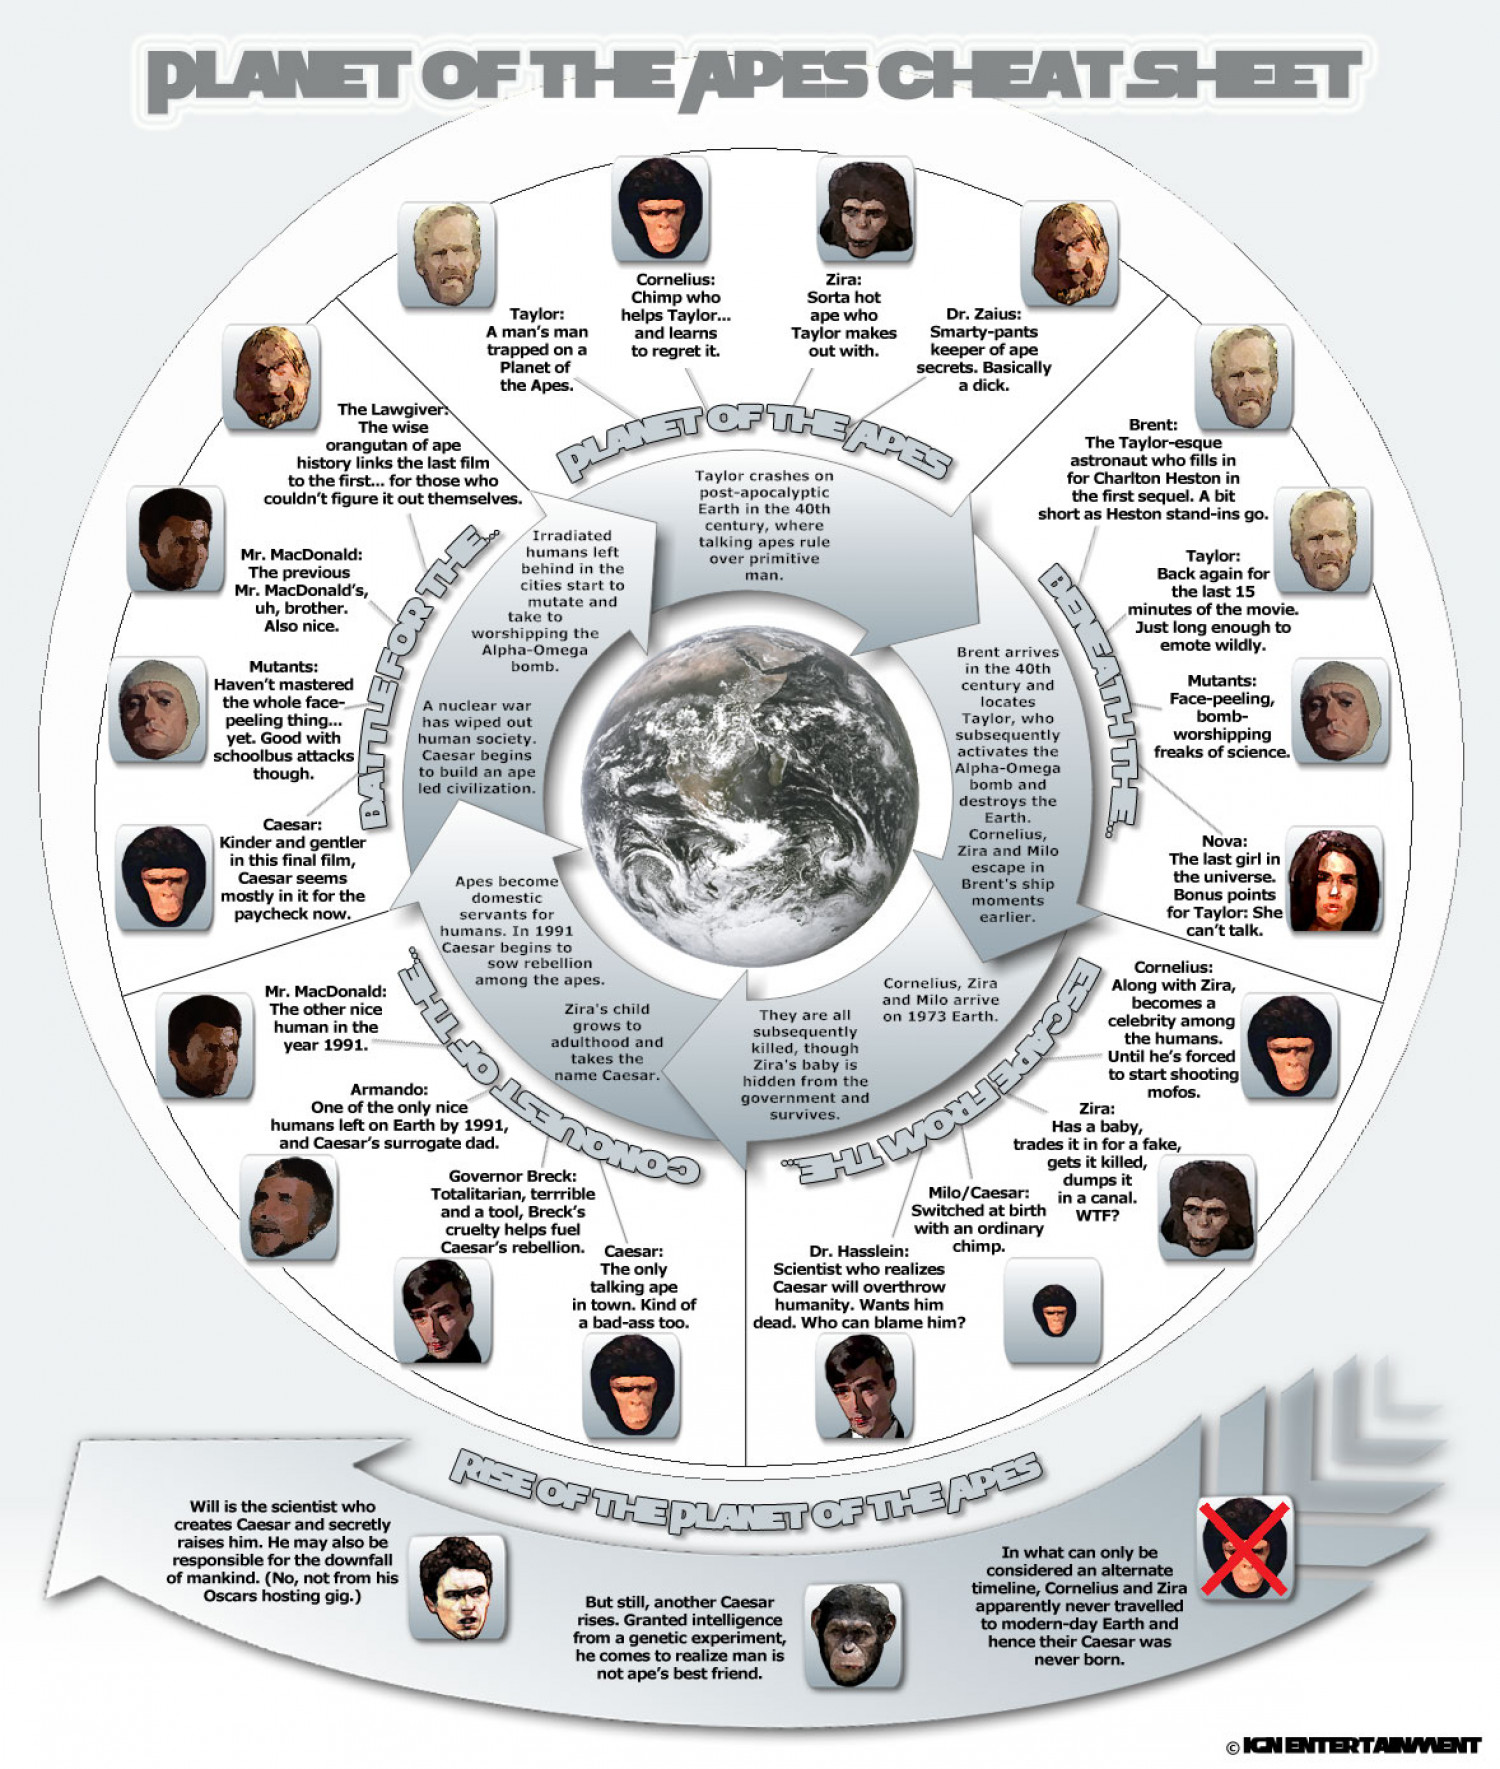 PLANET OF THE APES CHEAT SHEET Infographic